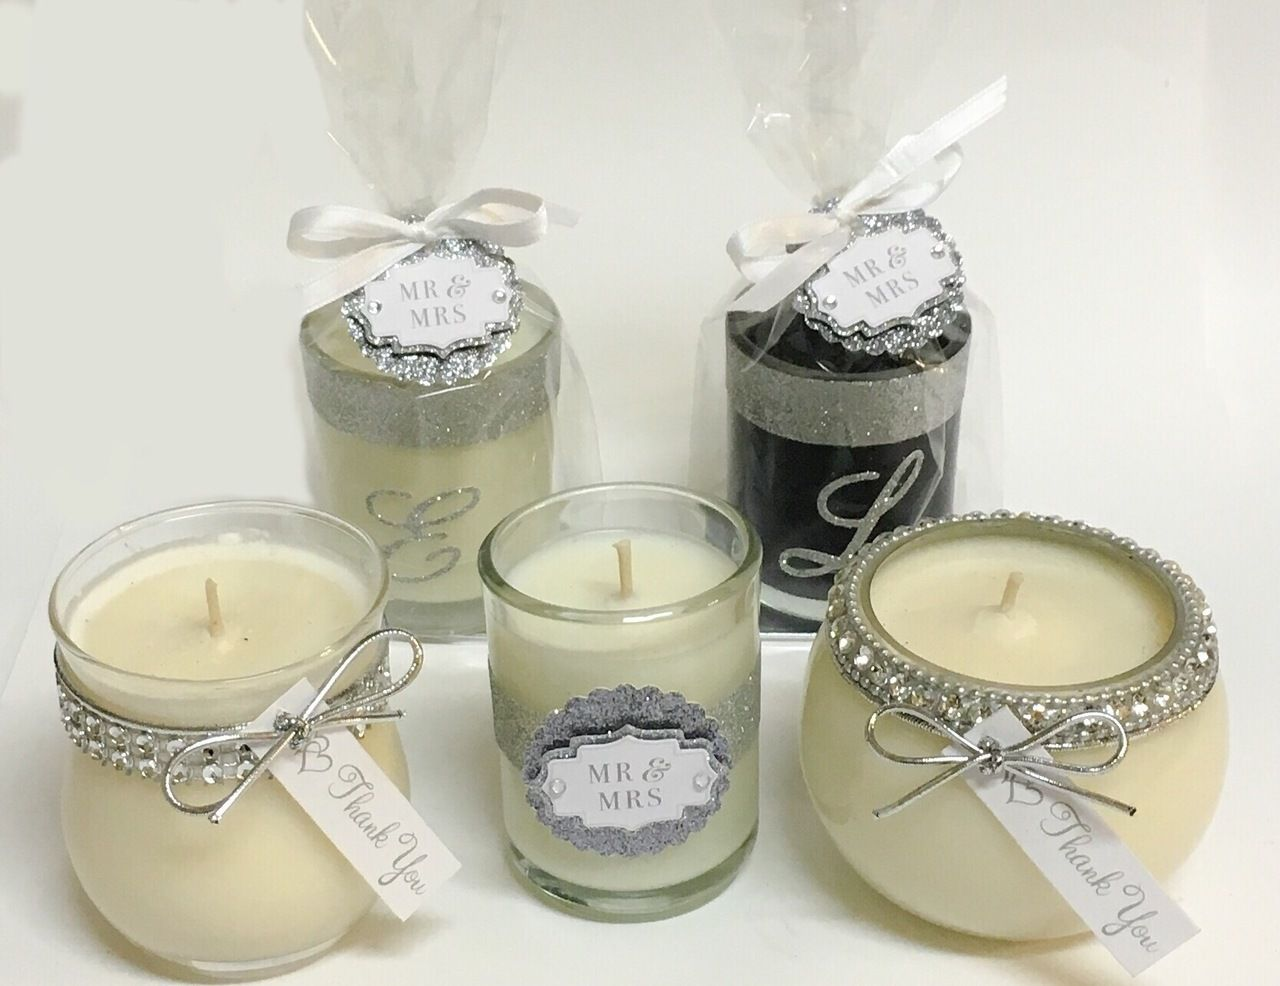 Happy Kat Candles & Gifts offers a wide variety of hand-crafted ...